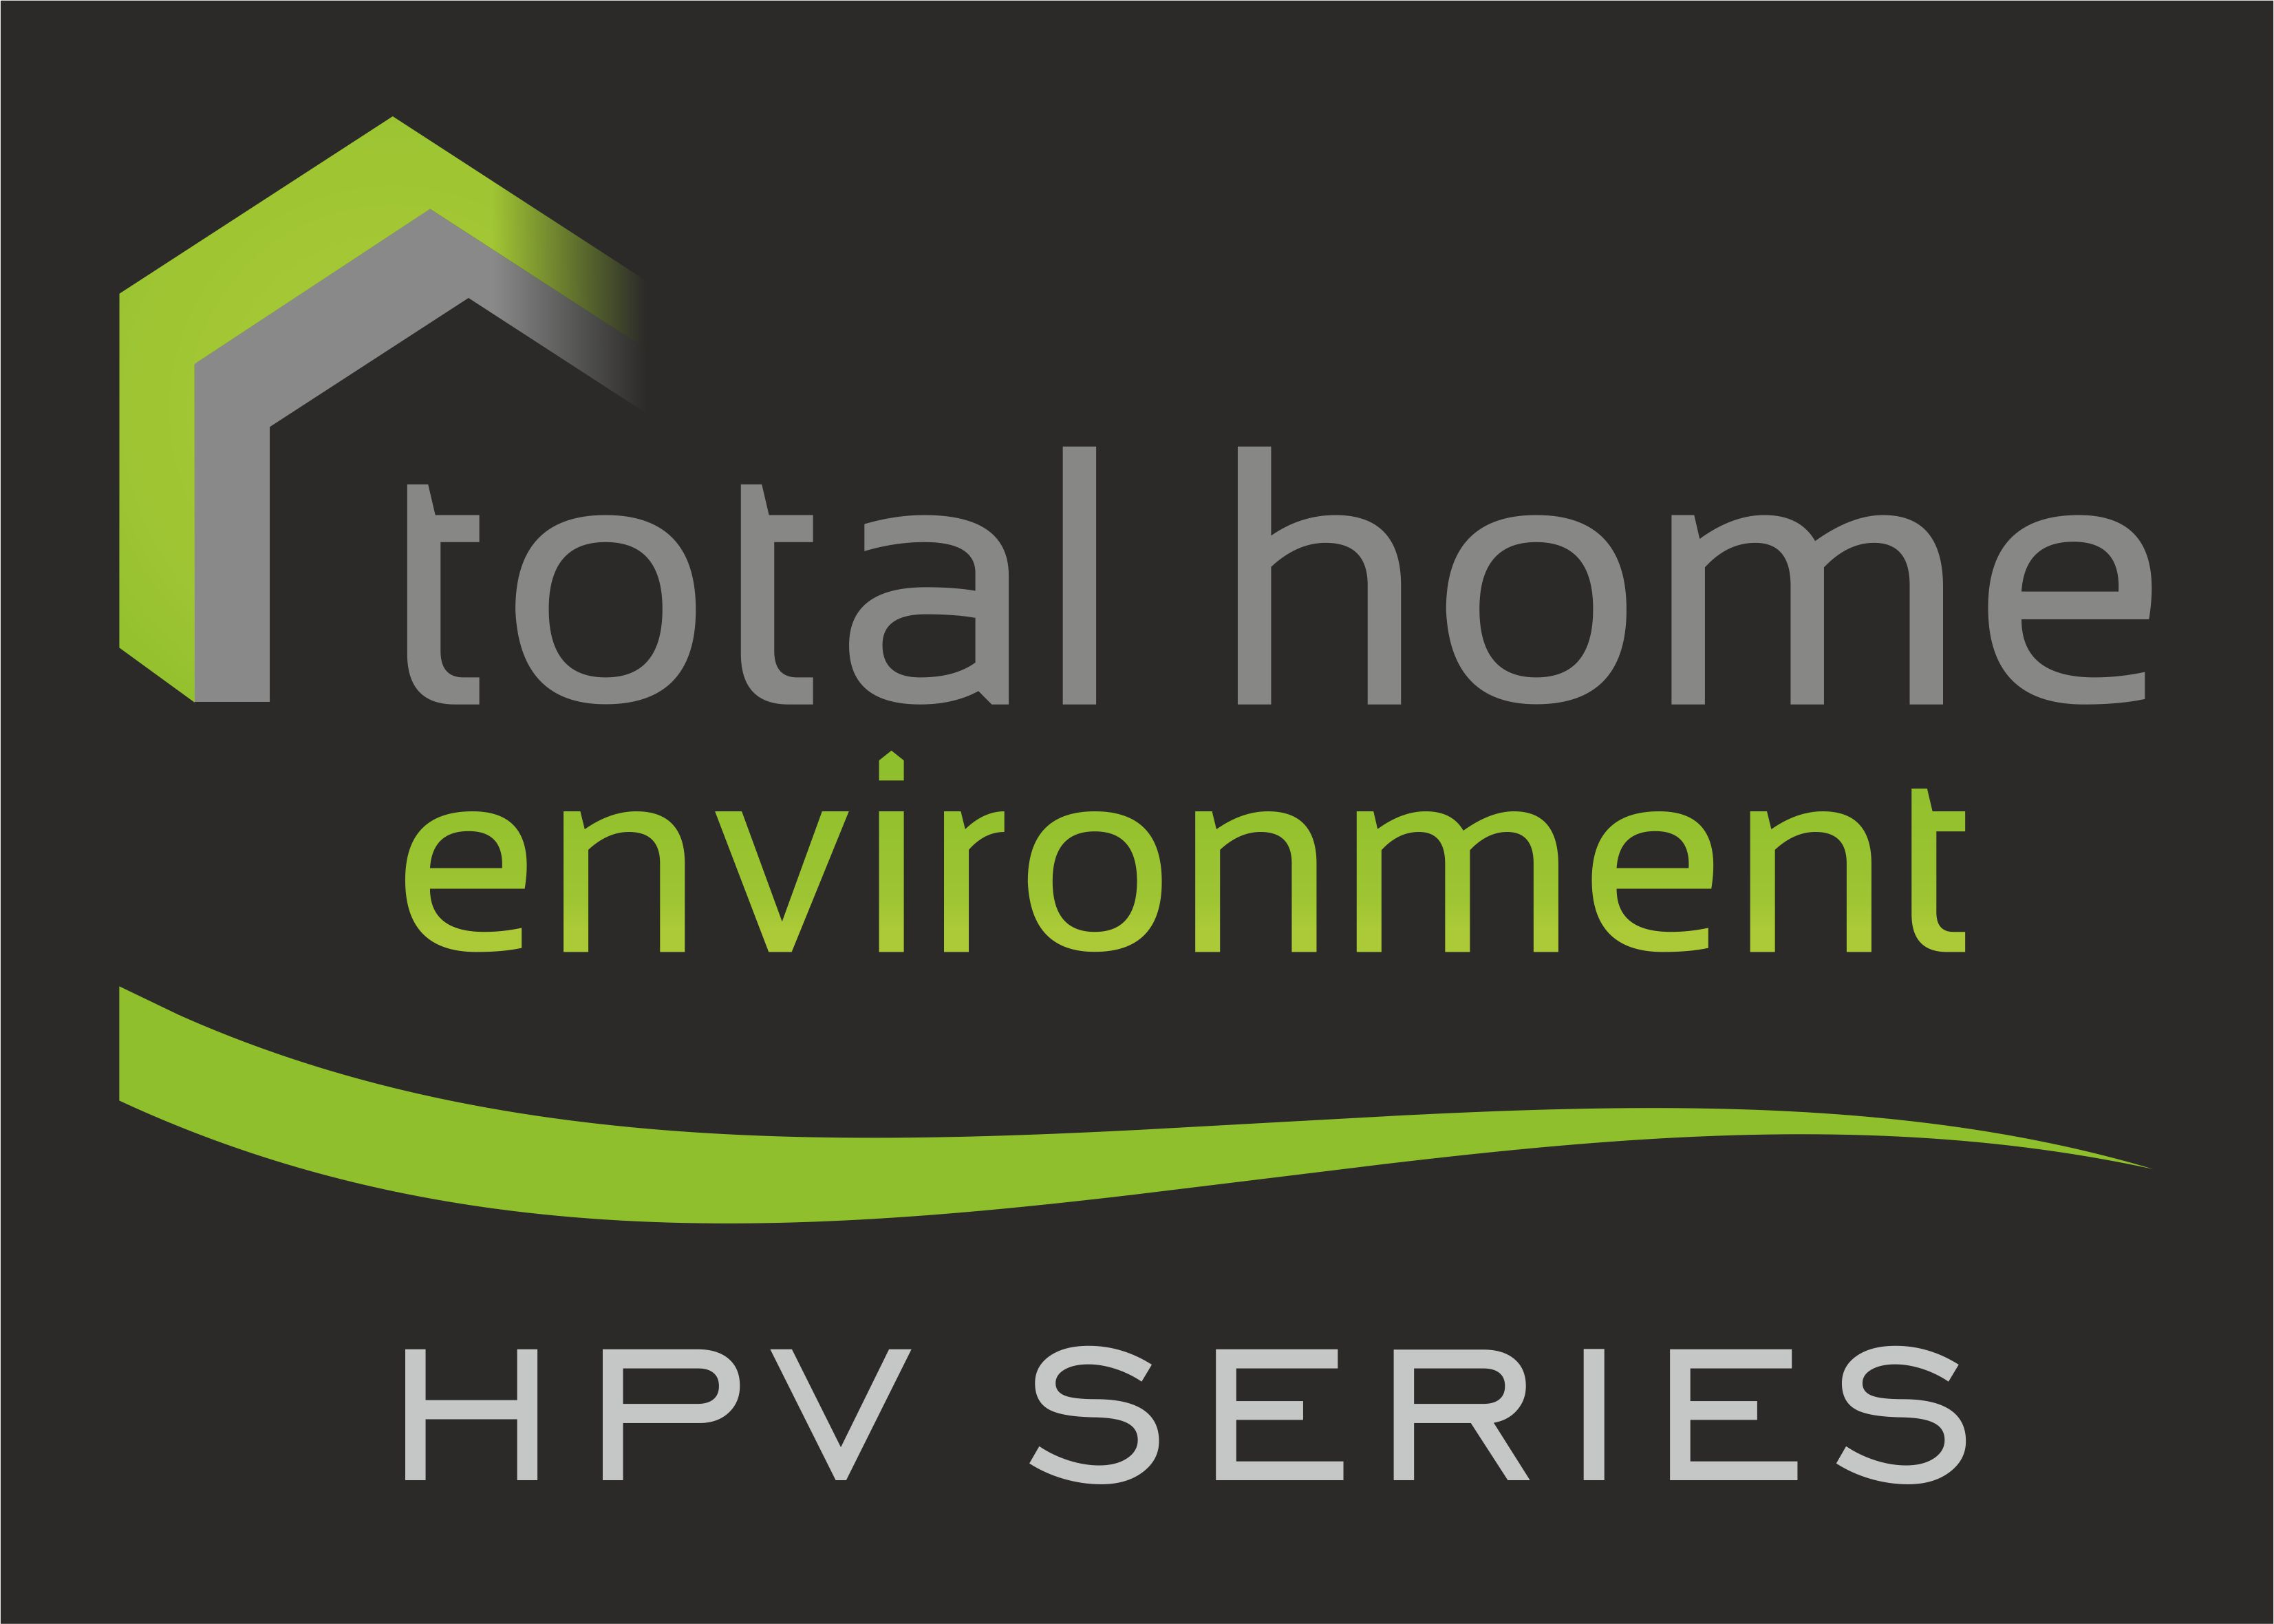 Total Home Environment's HPV Series